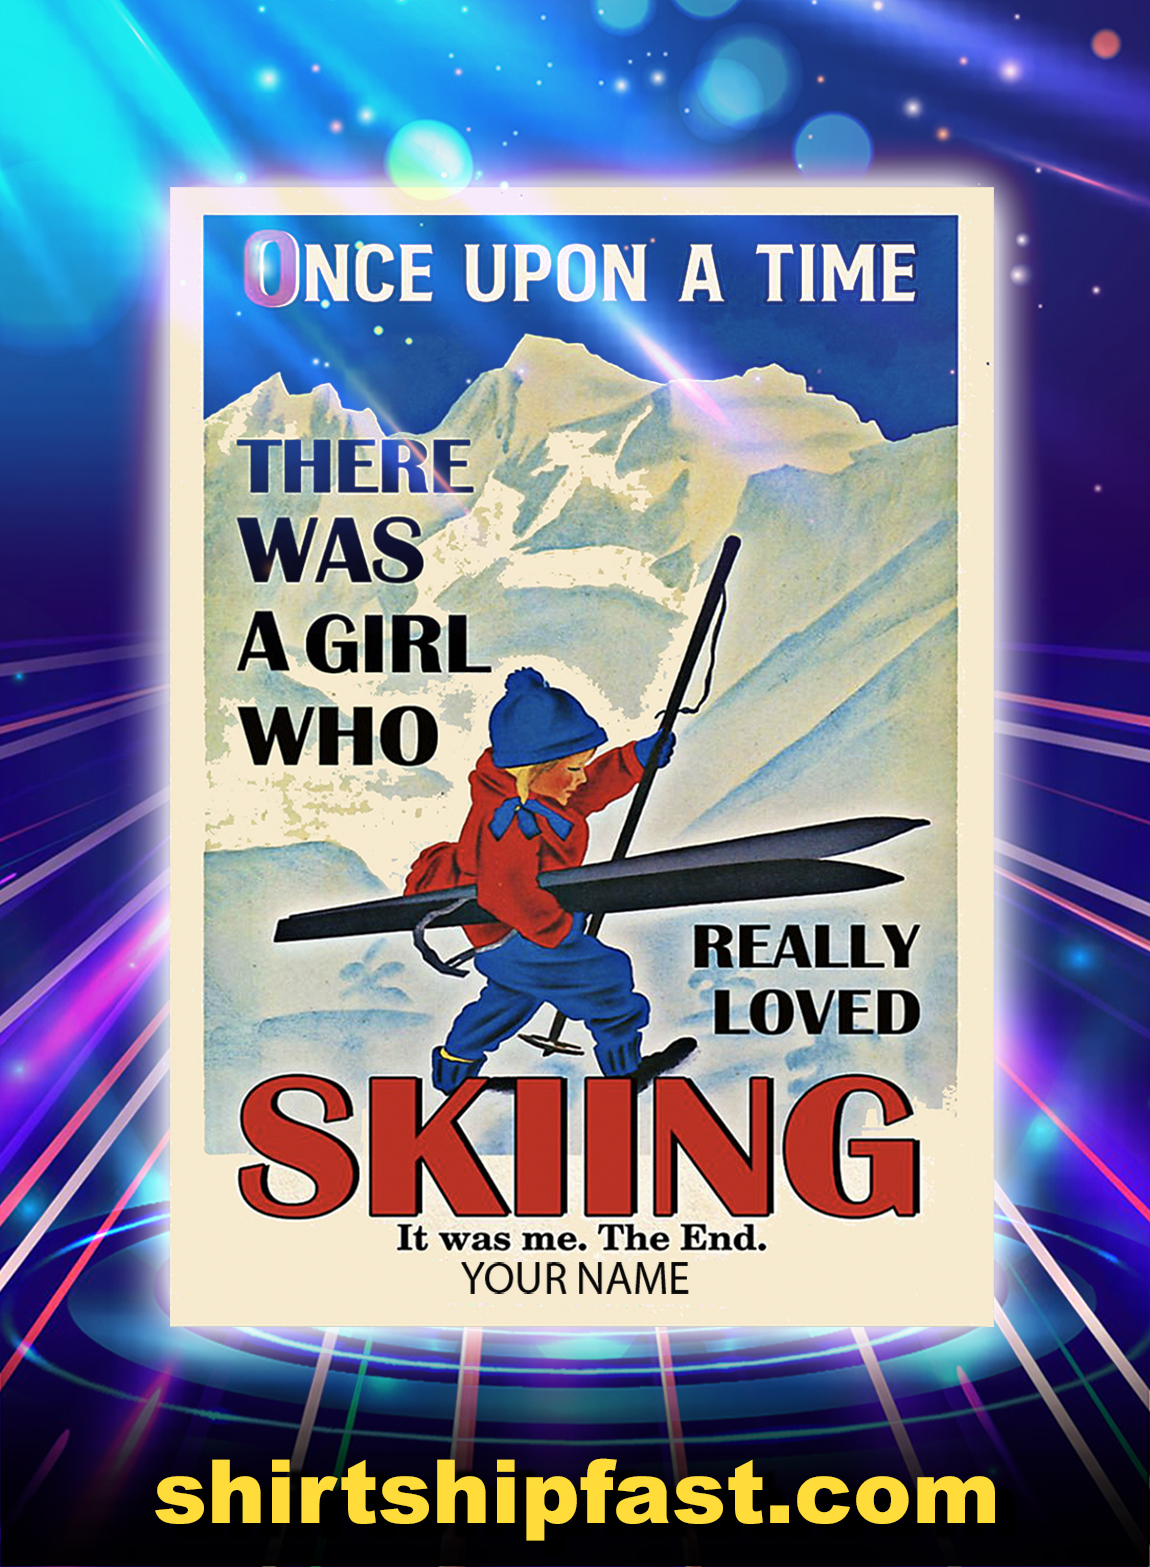 Personalized custom name Once upon a time there was a girl who really loved skiing poster - A3